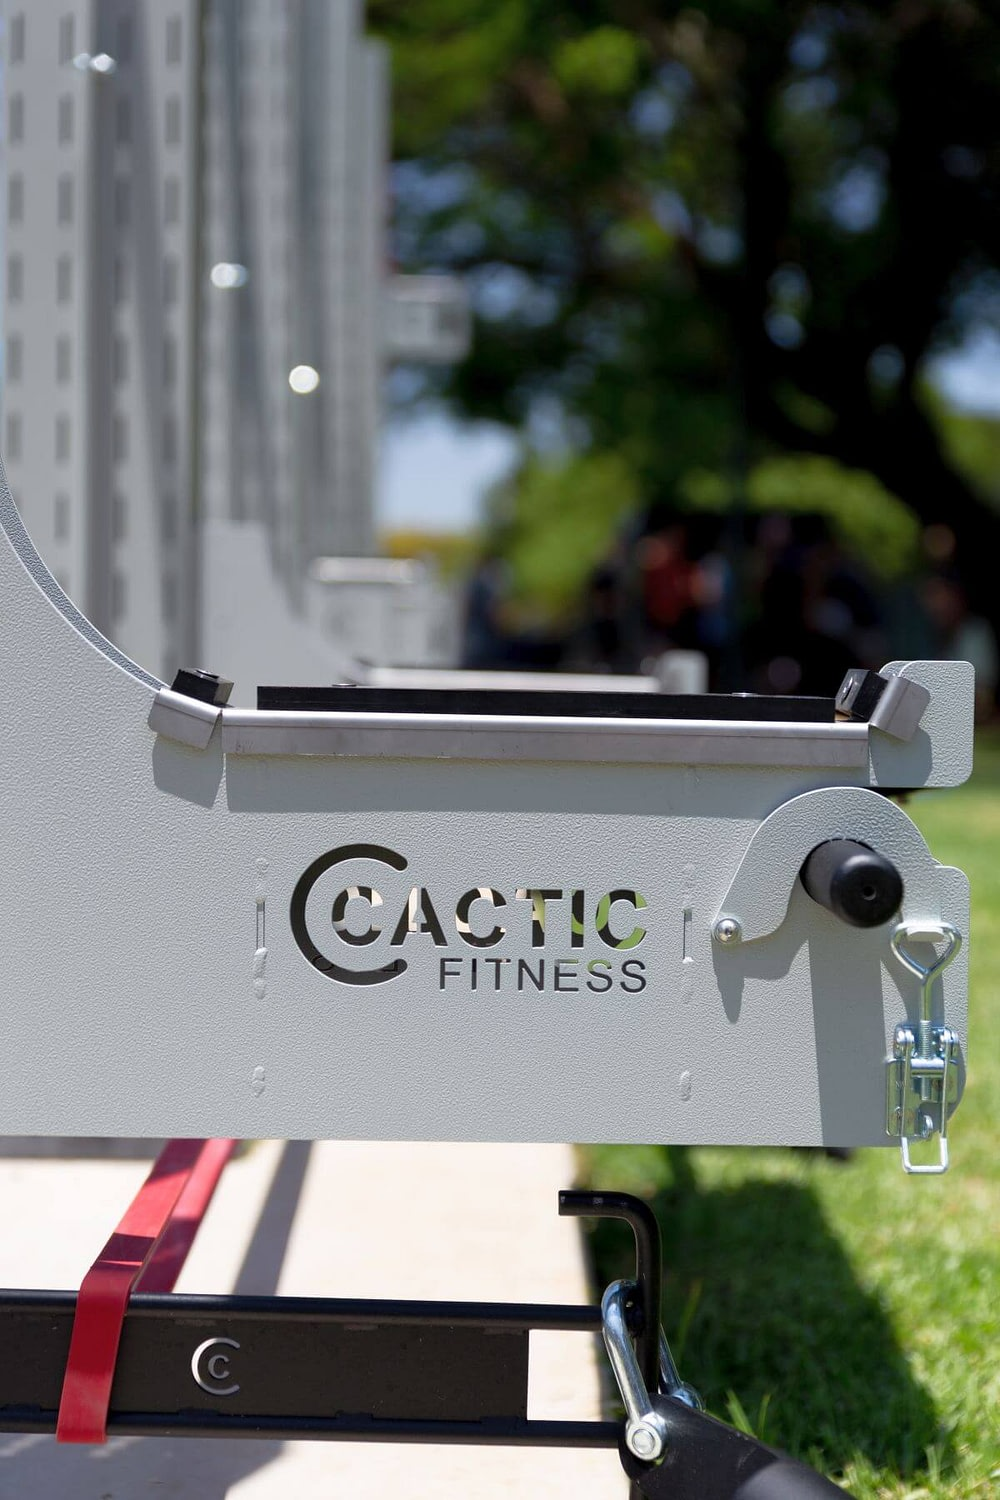 Gridfit Gym Equipment Cactic Fitness 212